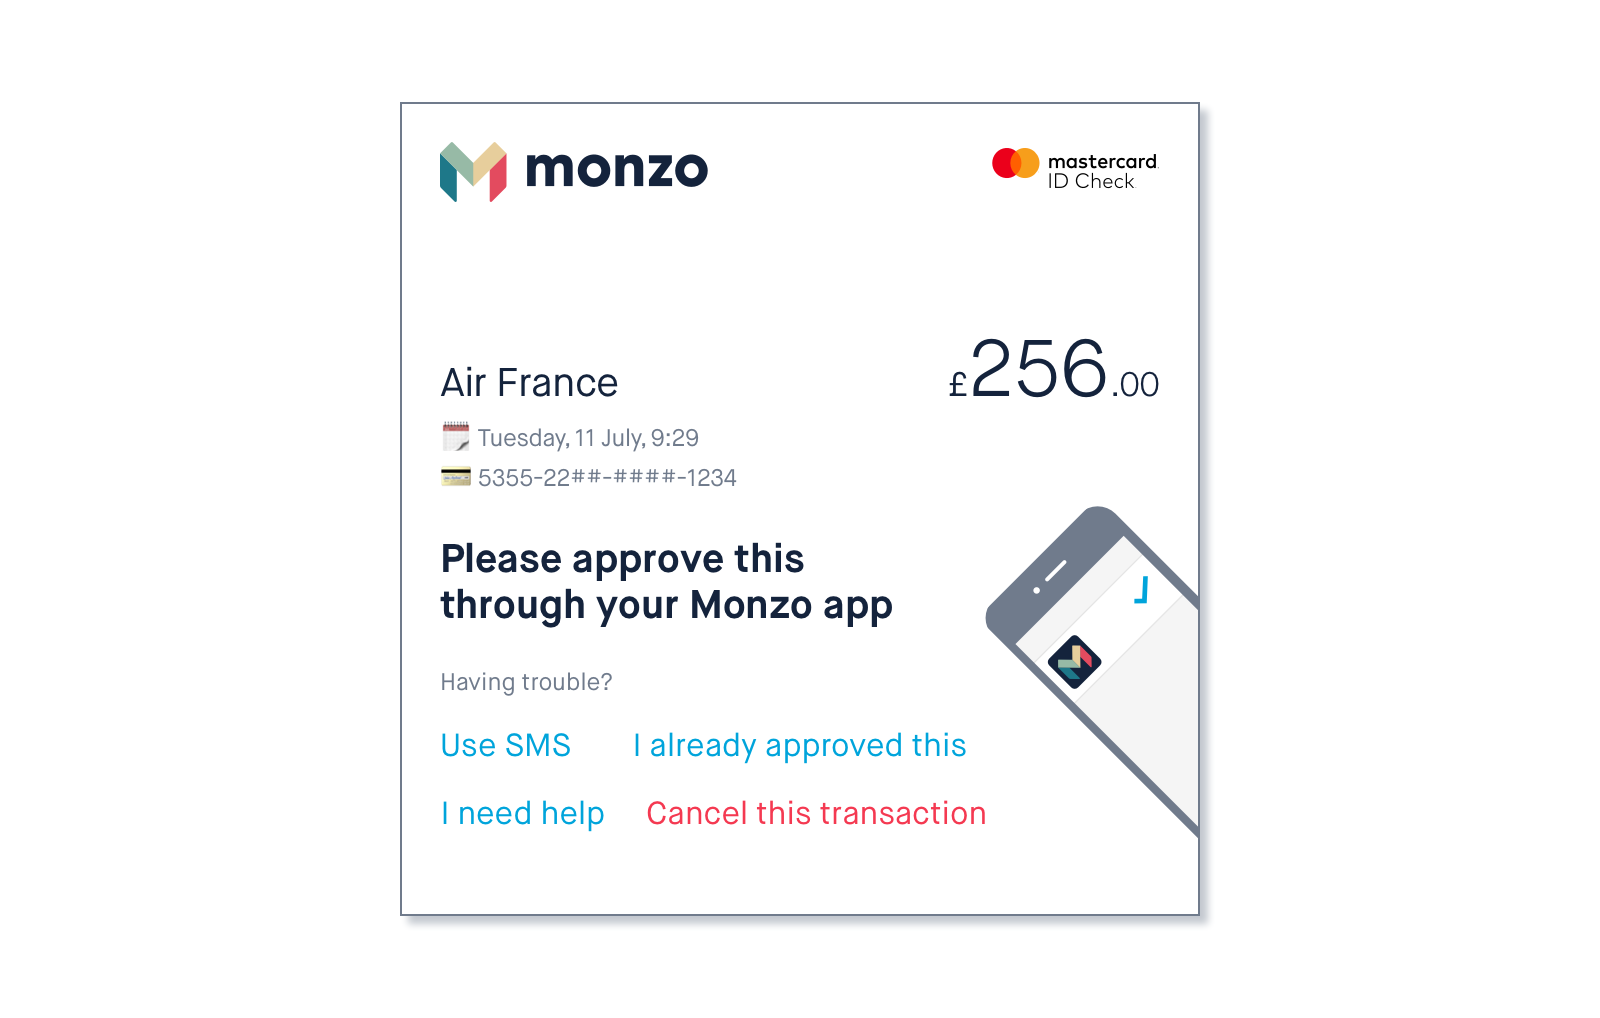 Is Monzo safe?